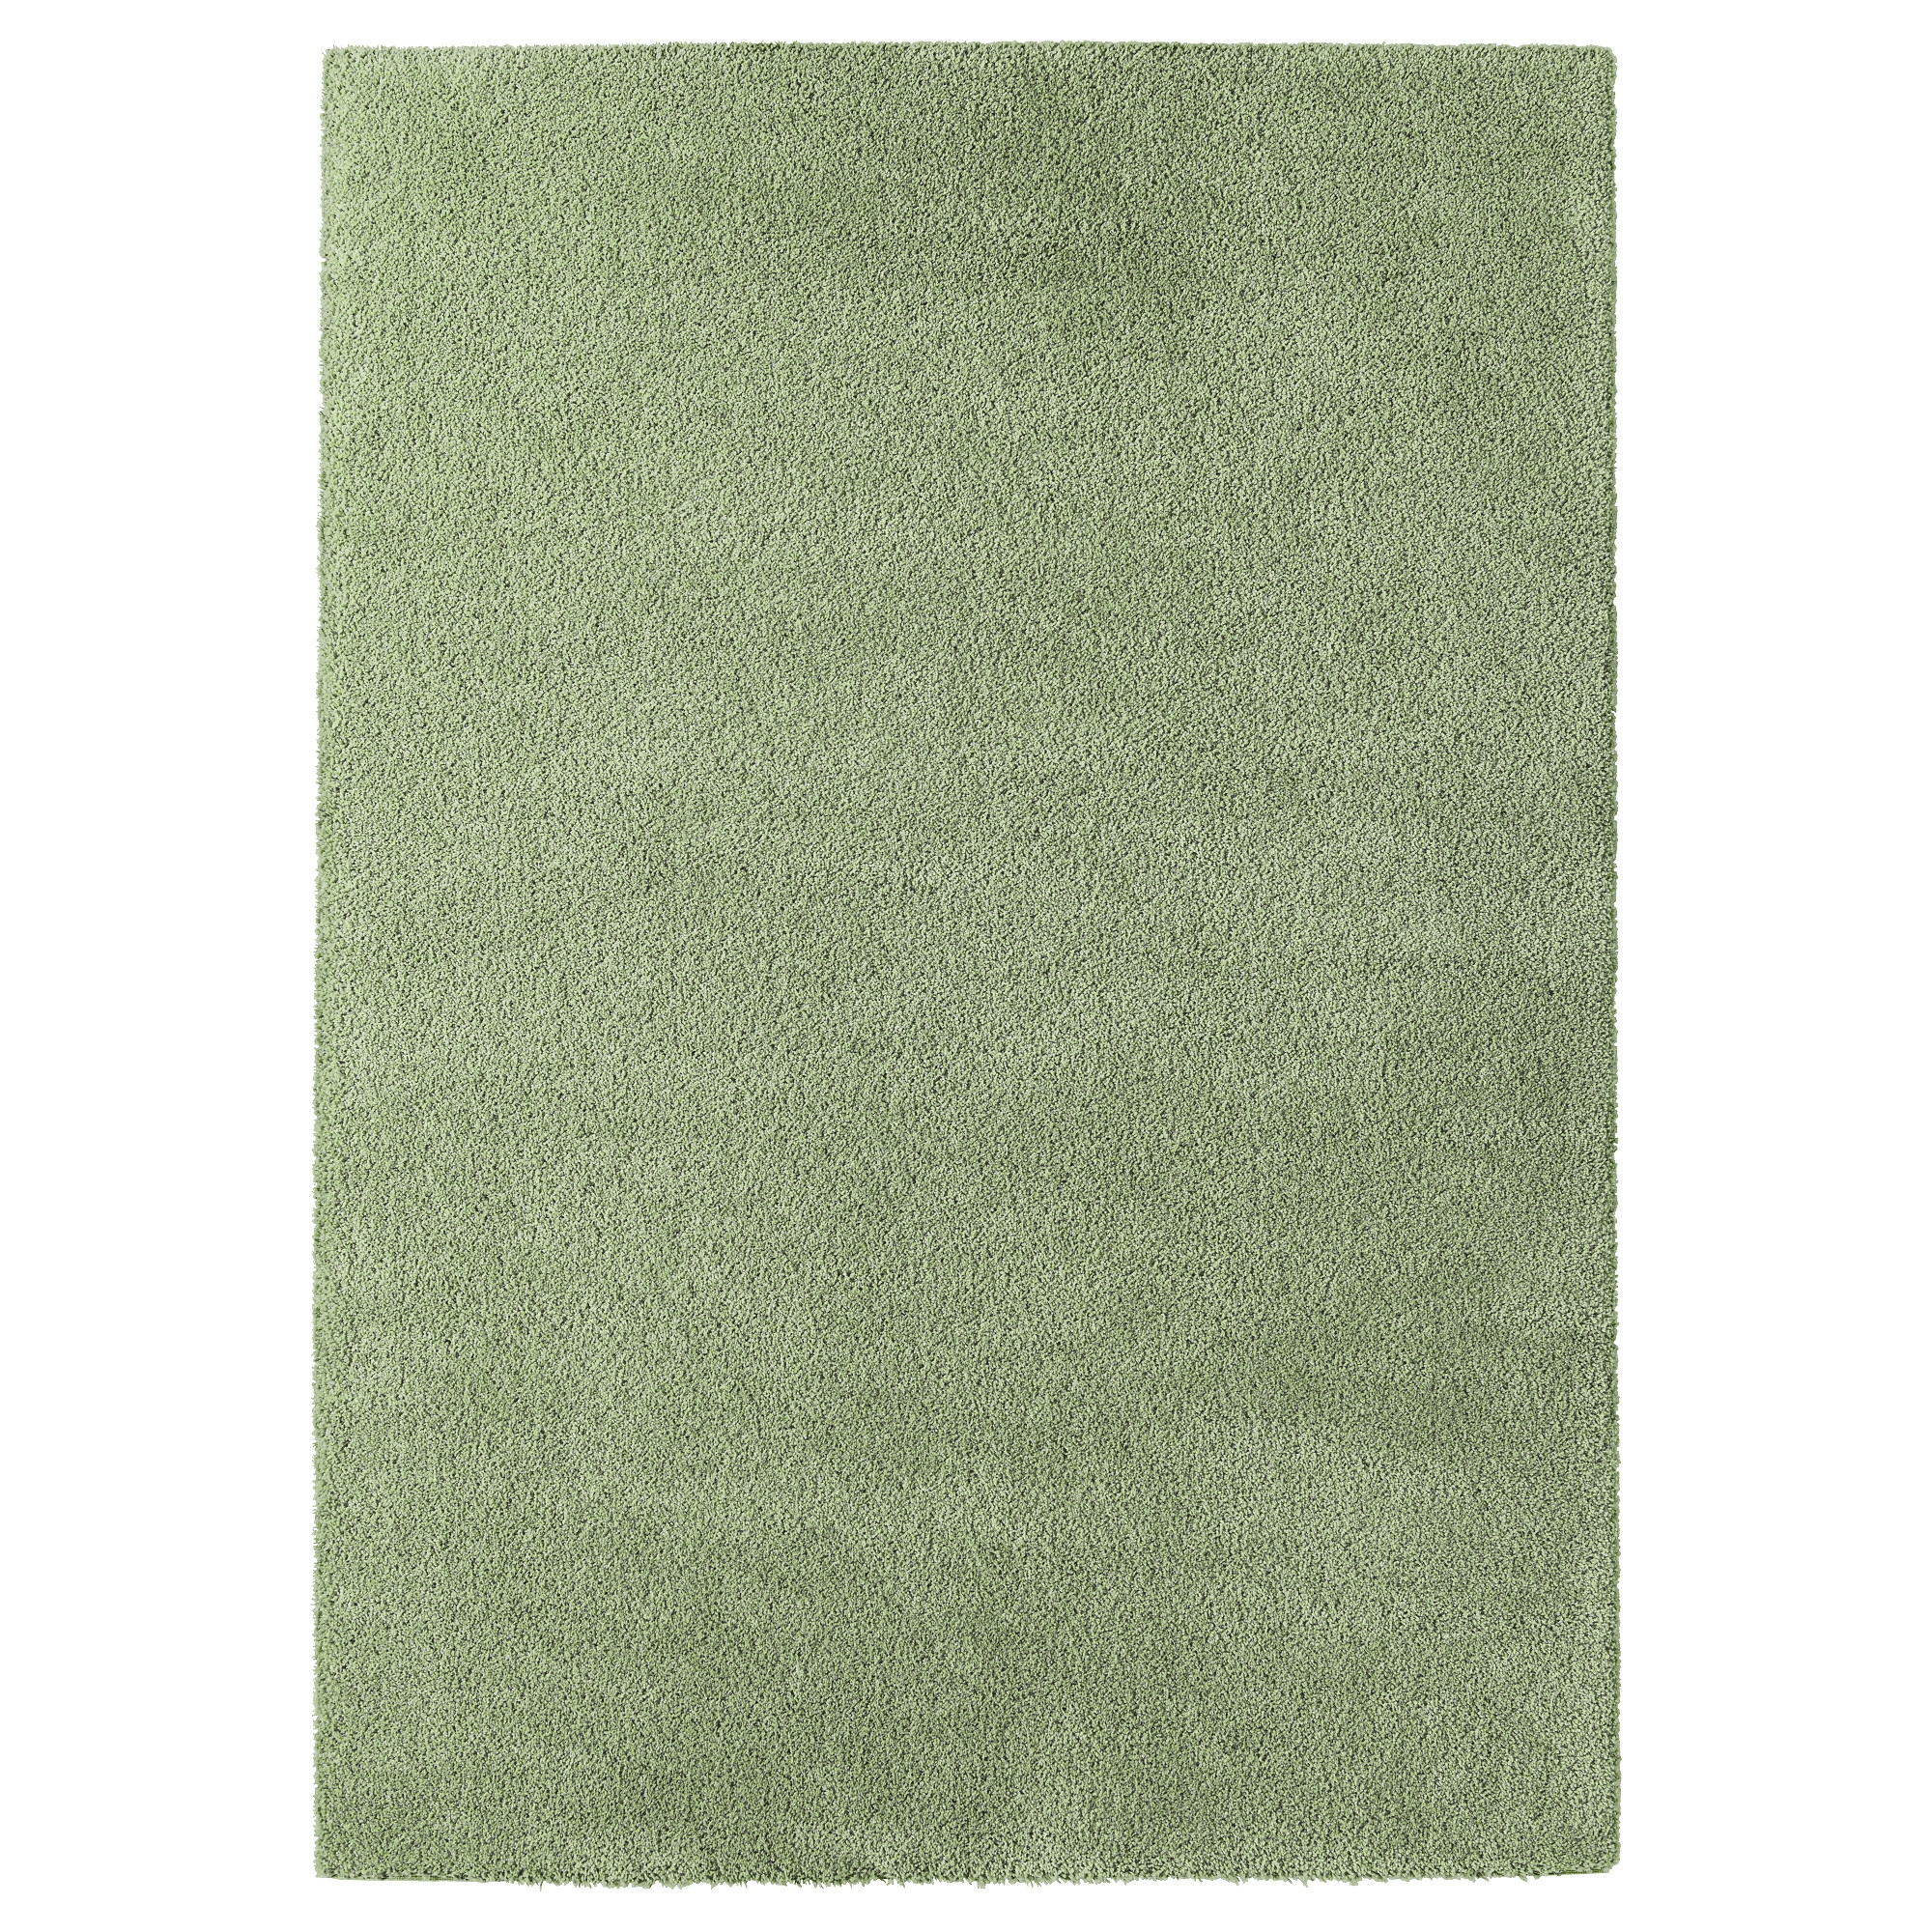 Flooring Stunning Sisal Rug Ikea For Cozy Your Home Flooring Inside Rug Runners Green (#6 of 20)